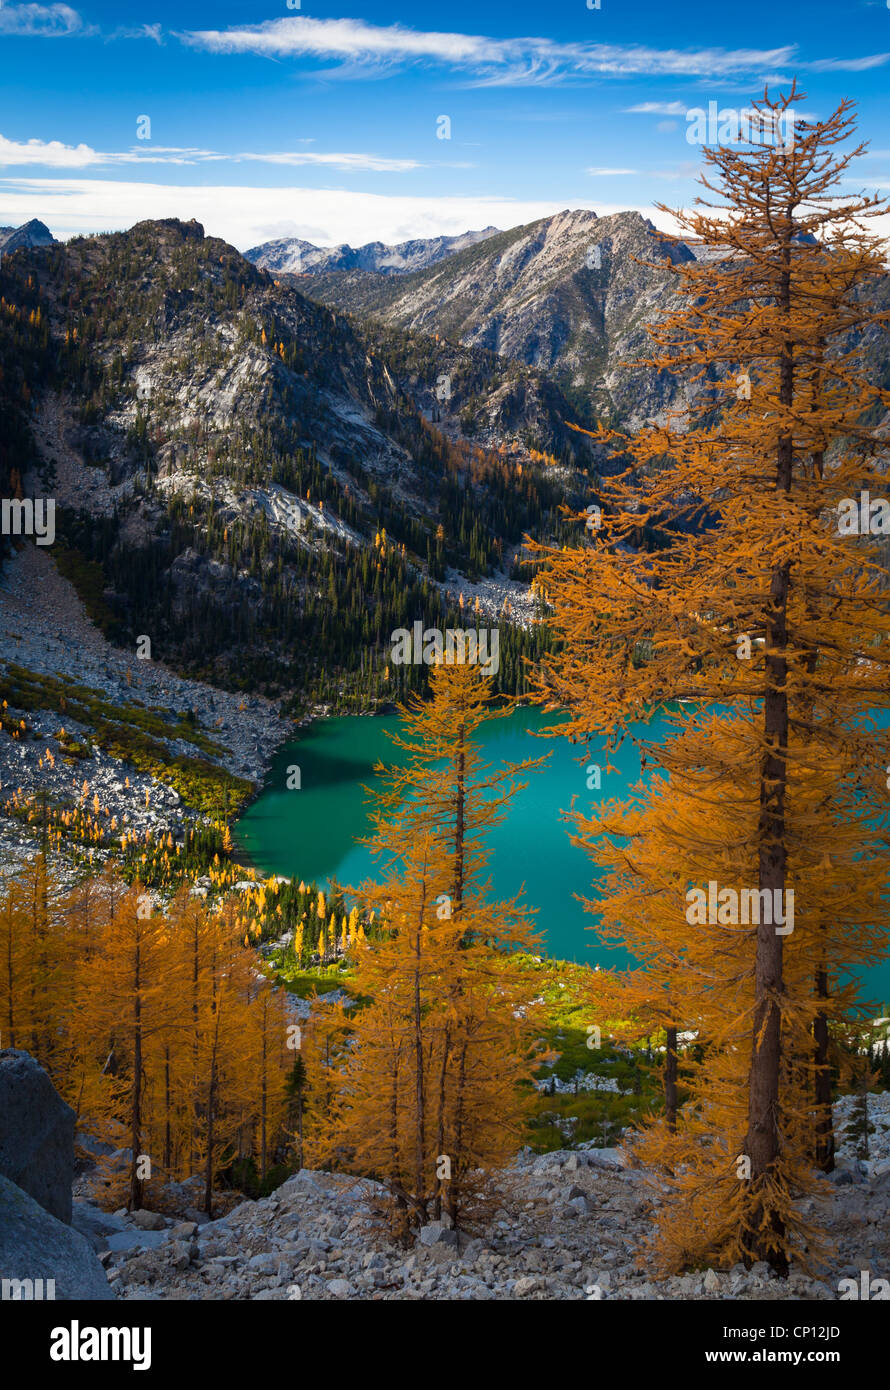 Larch trees at Asgaard Pass, high above Colchuck Lake, in the Enchantment Lakes wilderness of Washington state - Stock Image